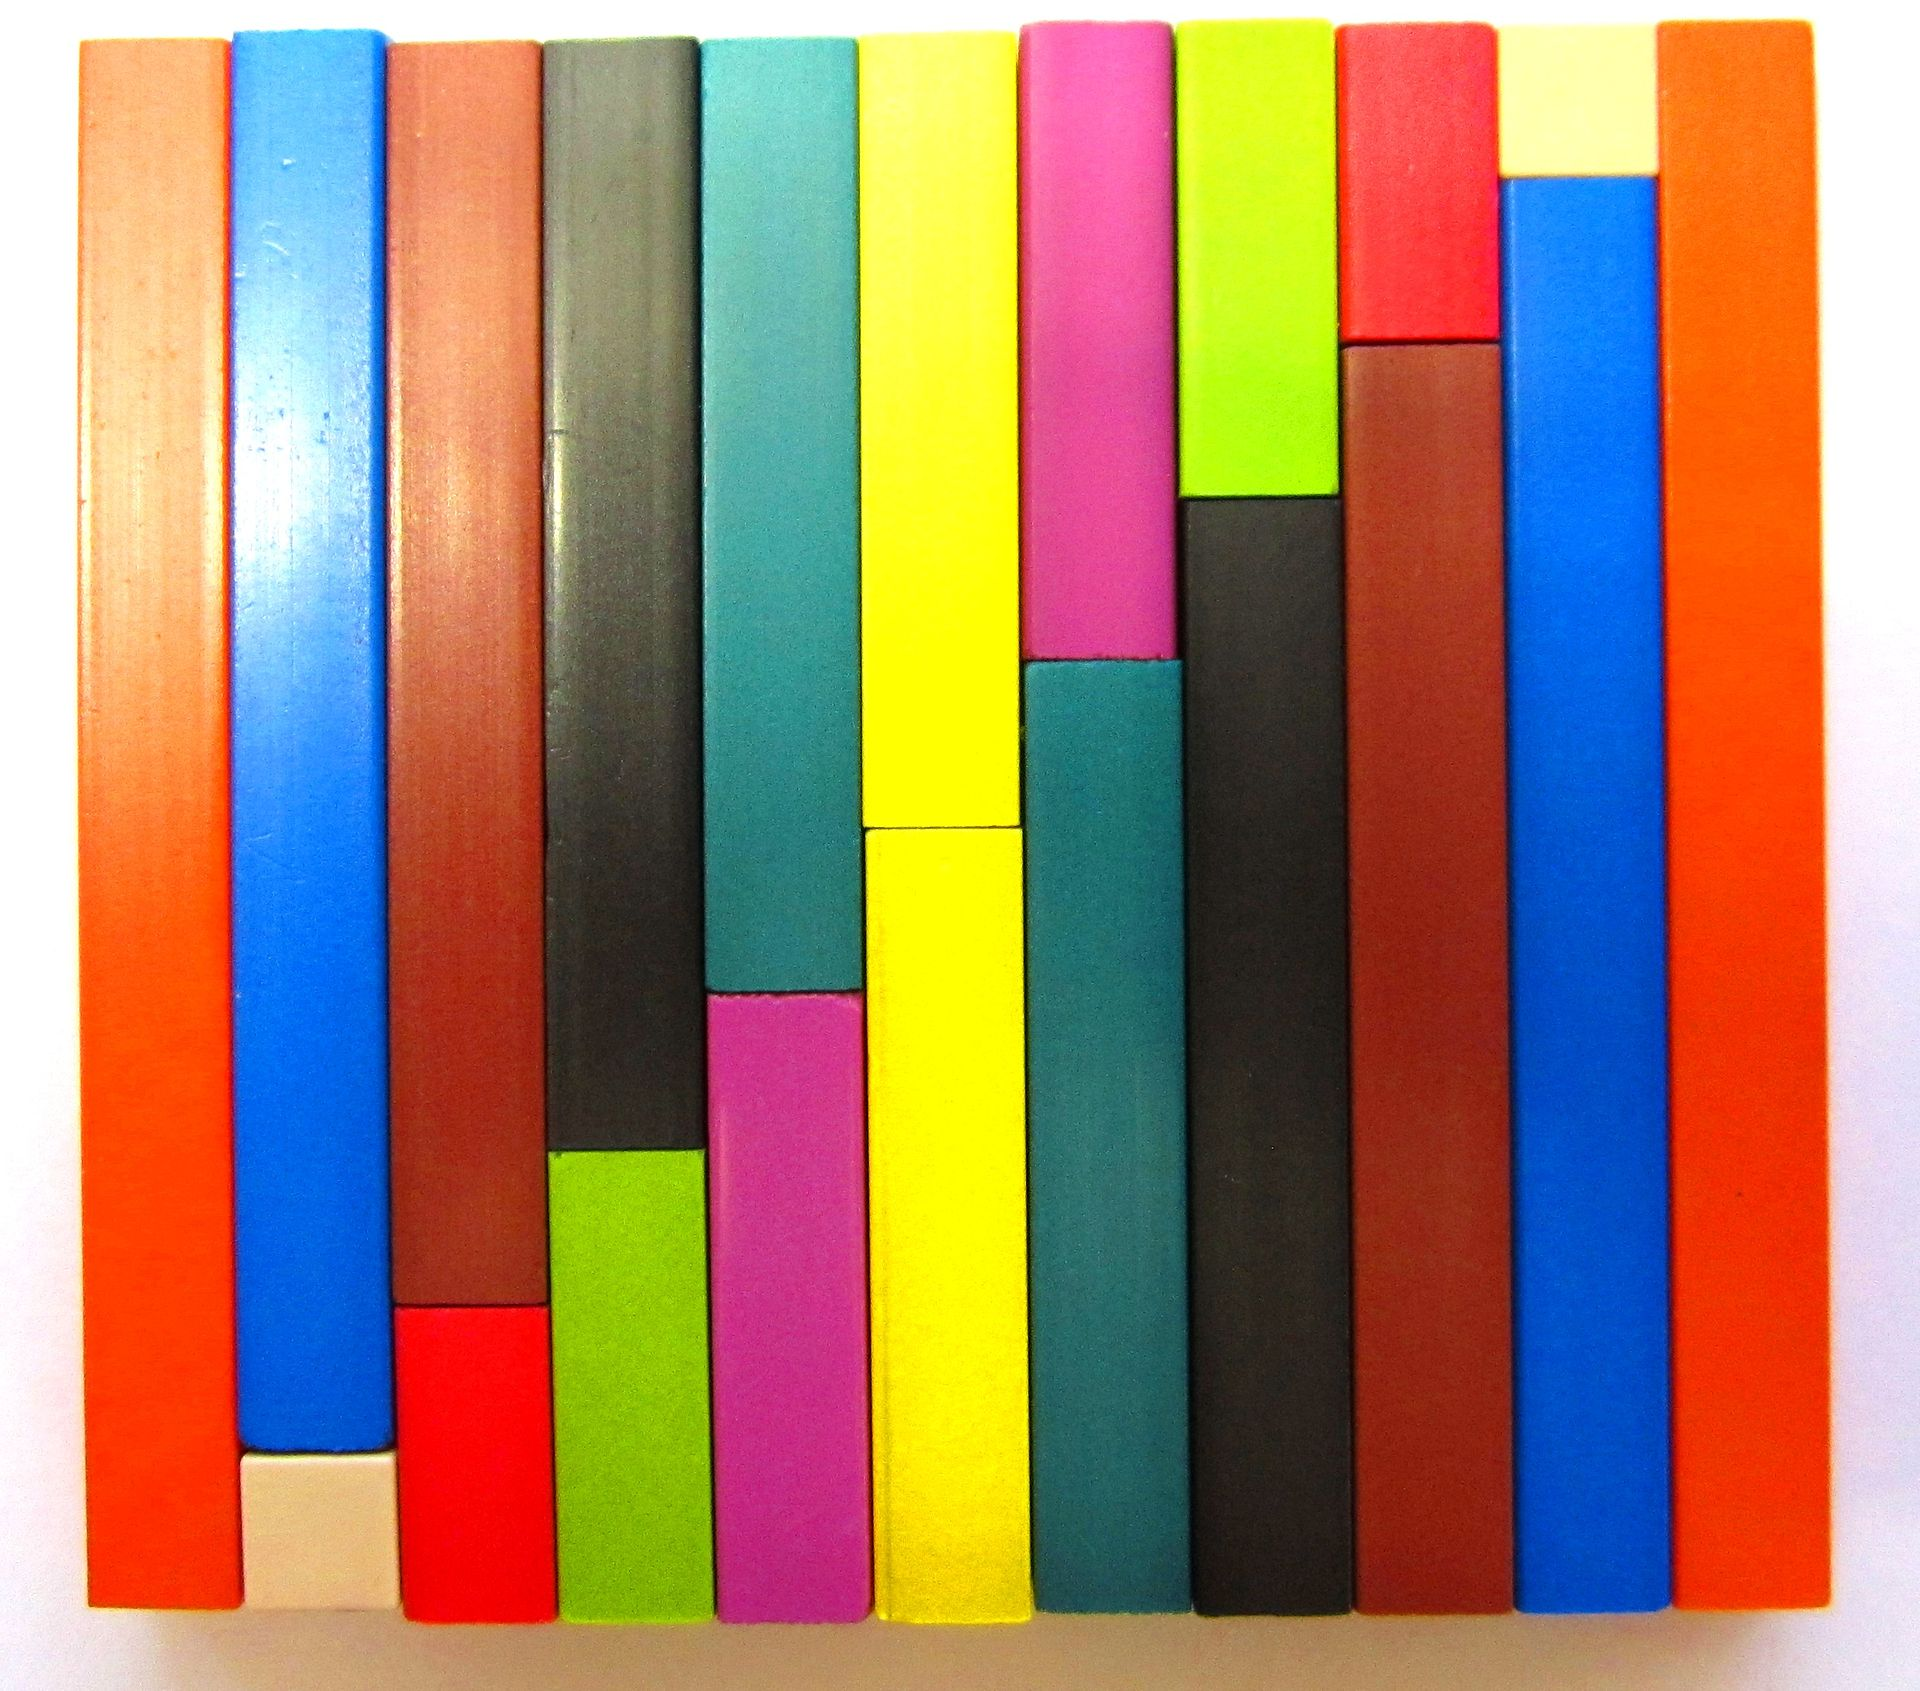 georges cuisenaire mdash wikip dia #13